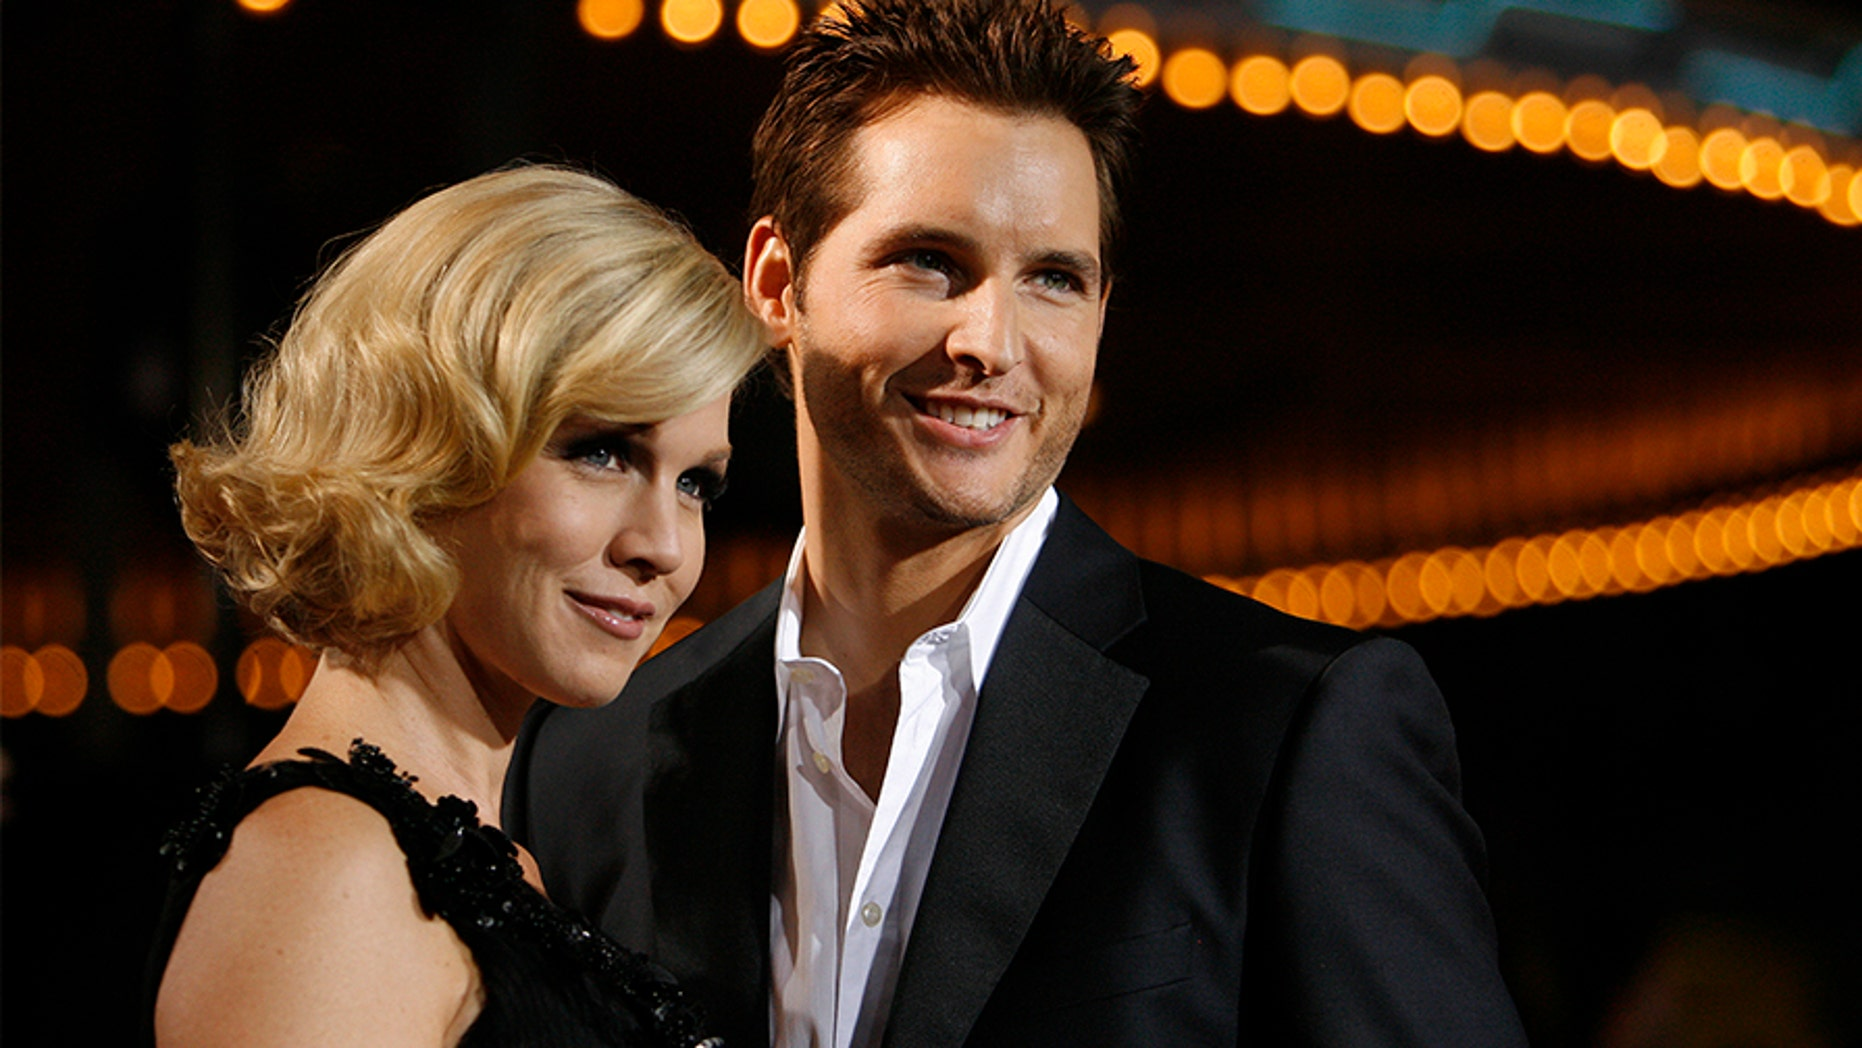 Peter Facinelli opened up about his divorce from Jennie Garth in LaPalme Magazine.